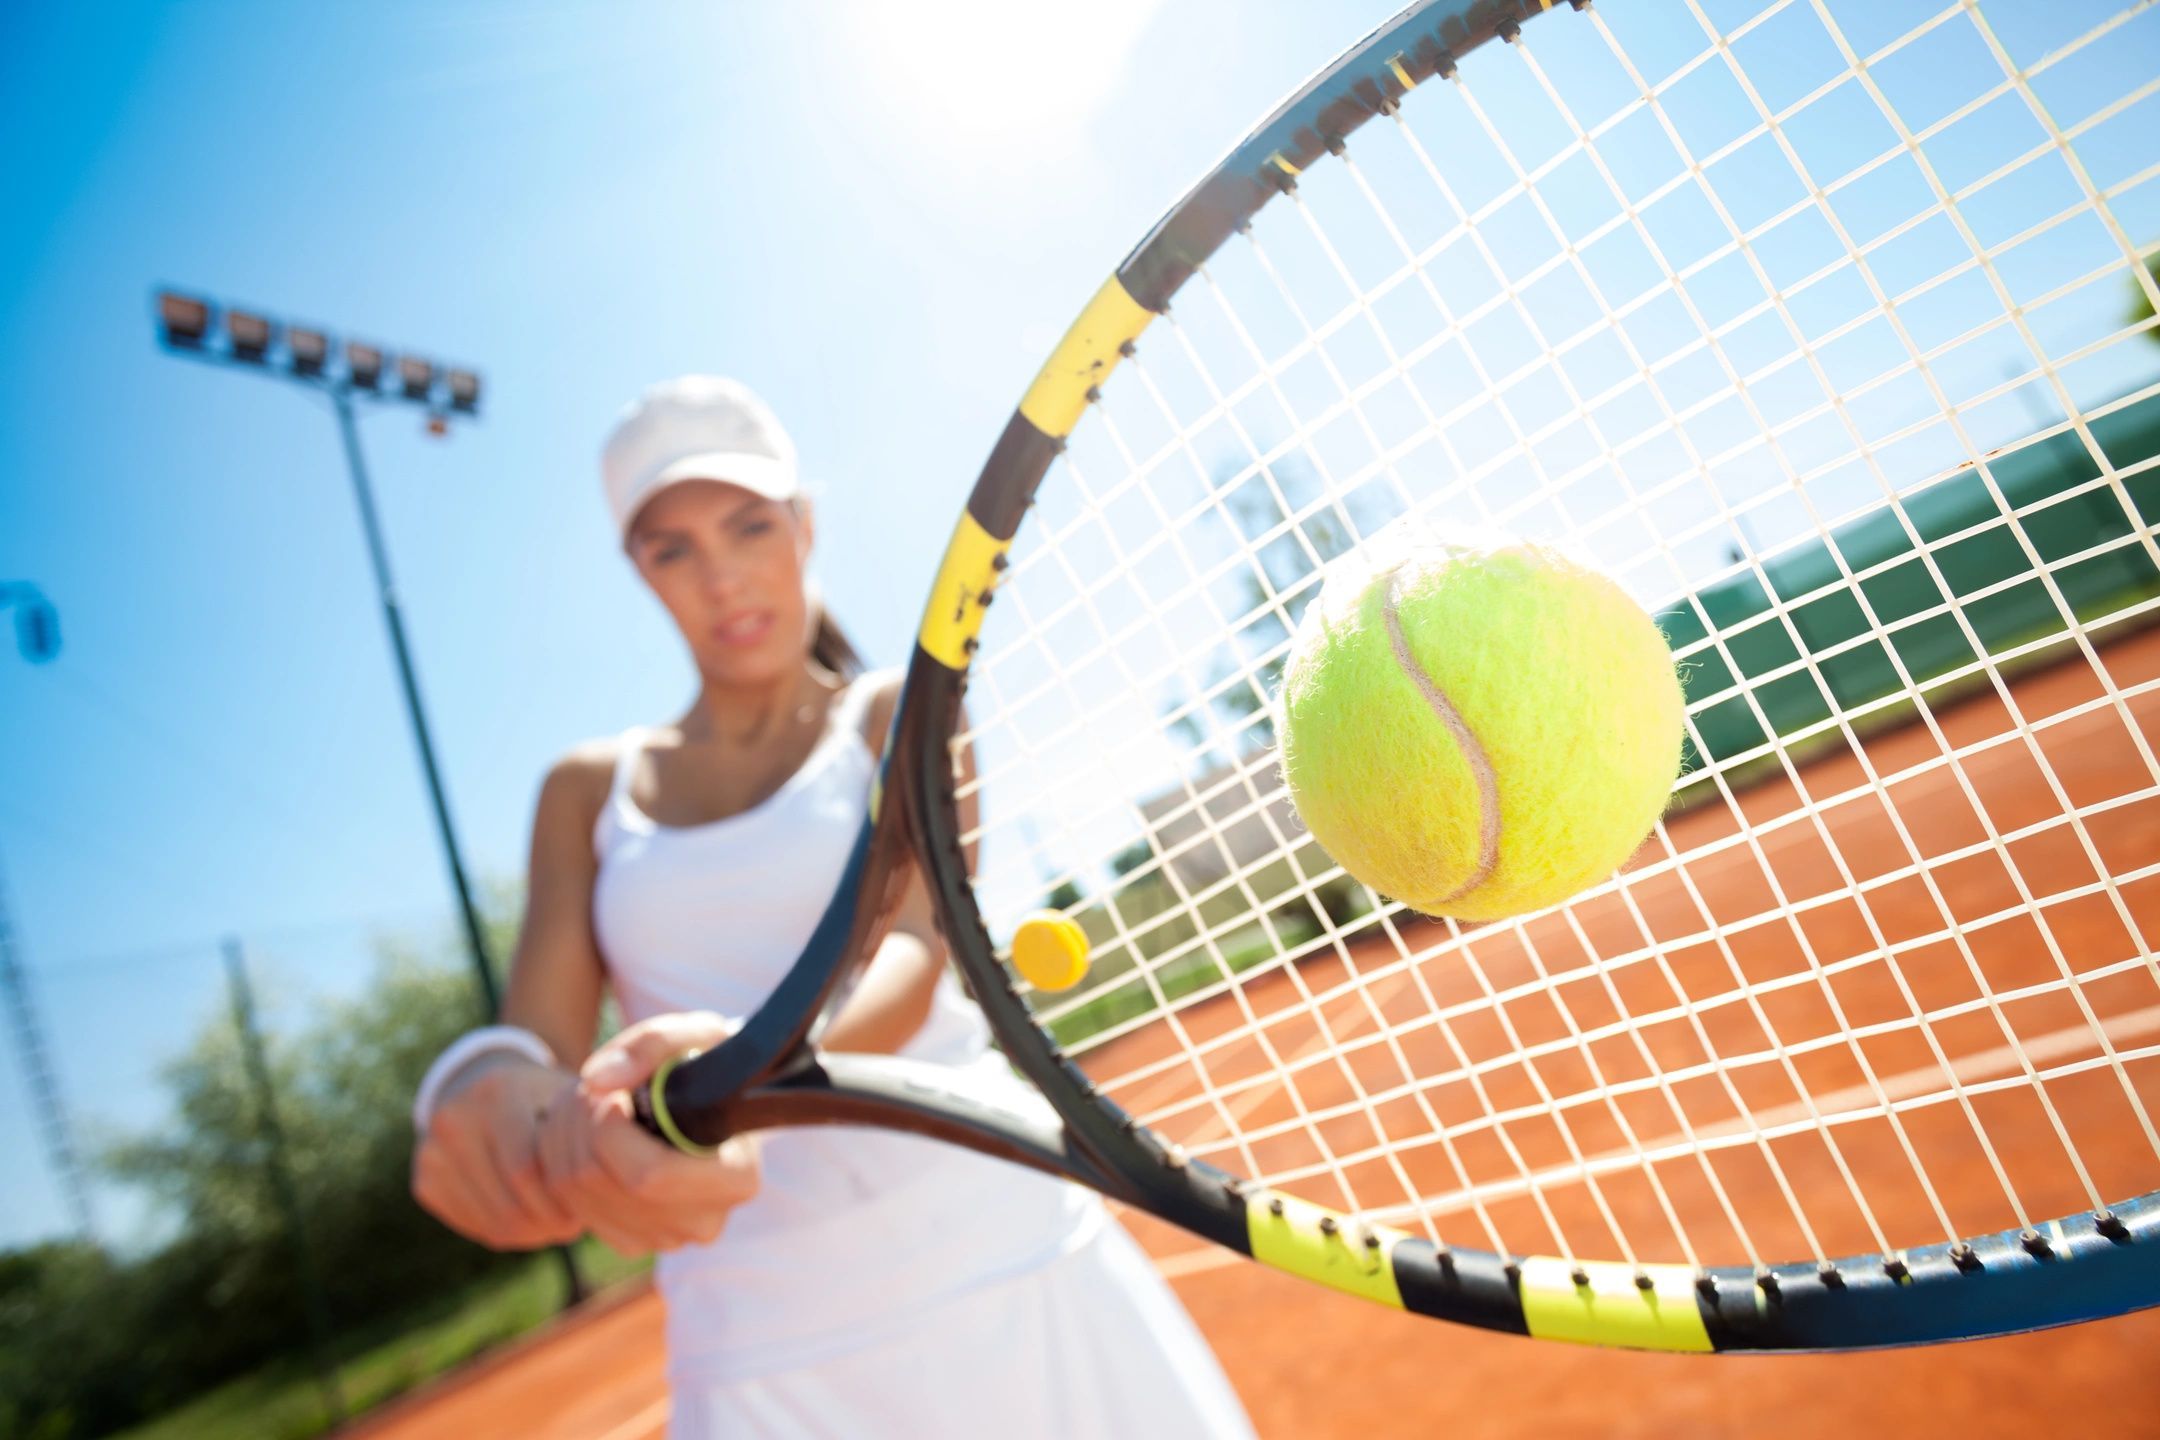 Traveling Tennis Pros - Tennis Lessons